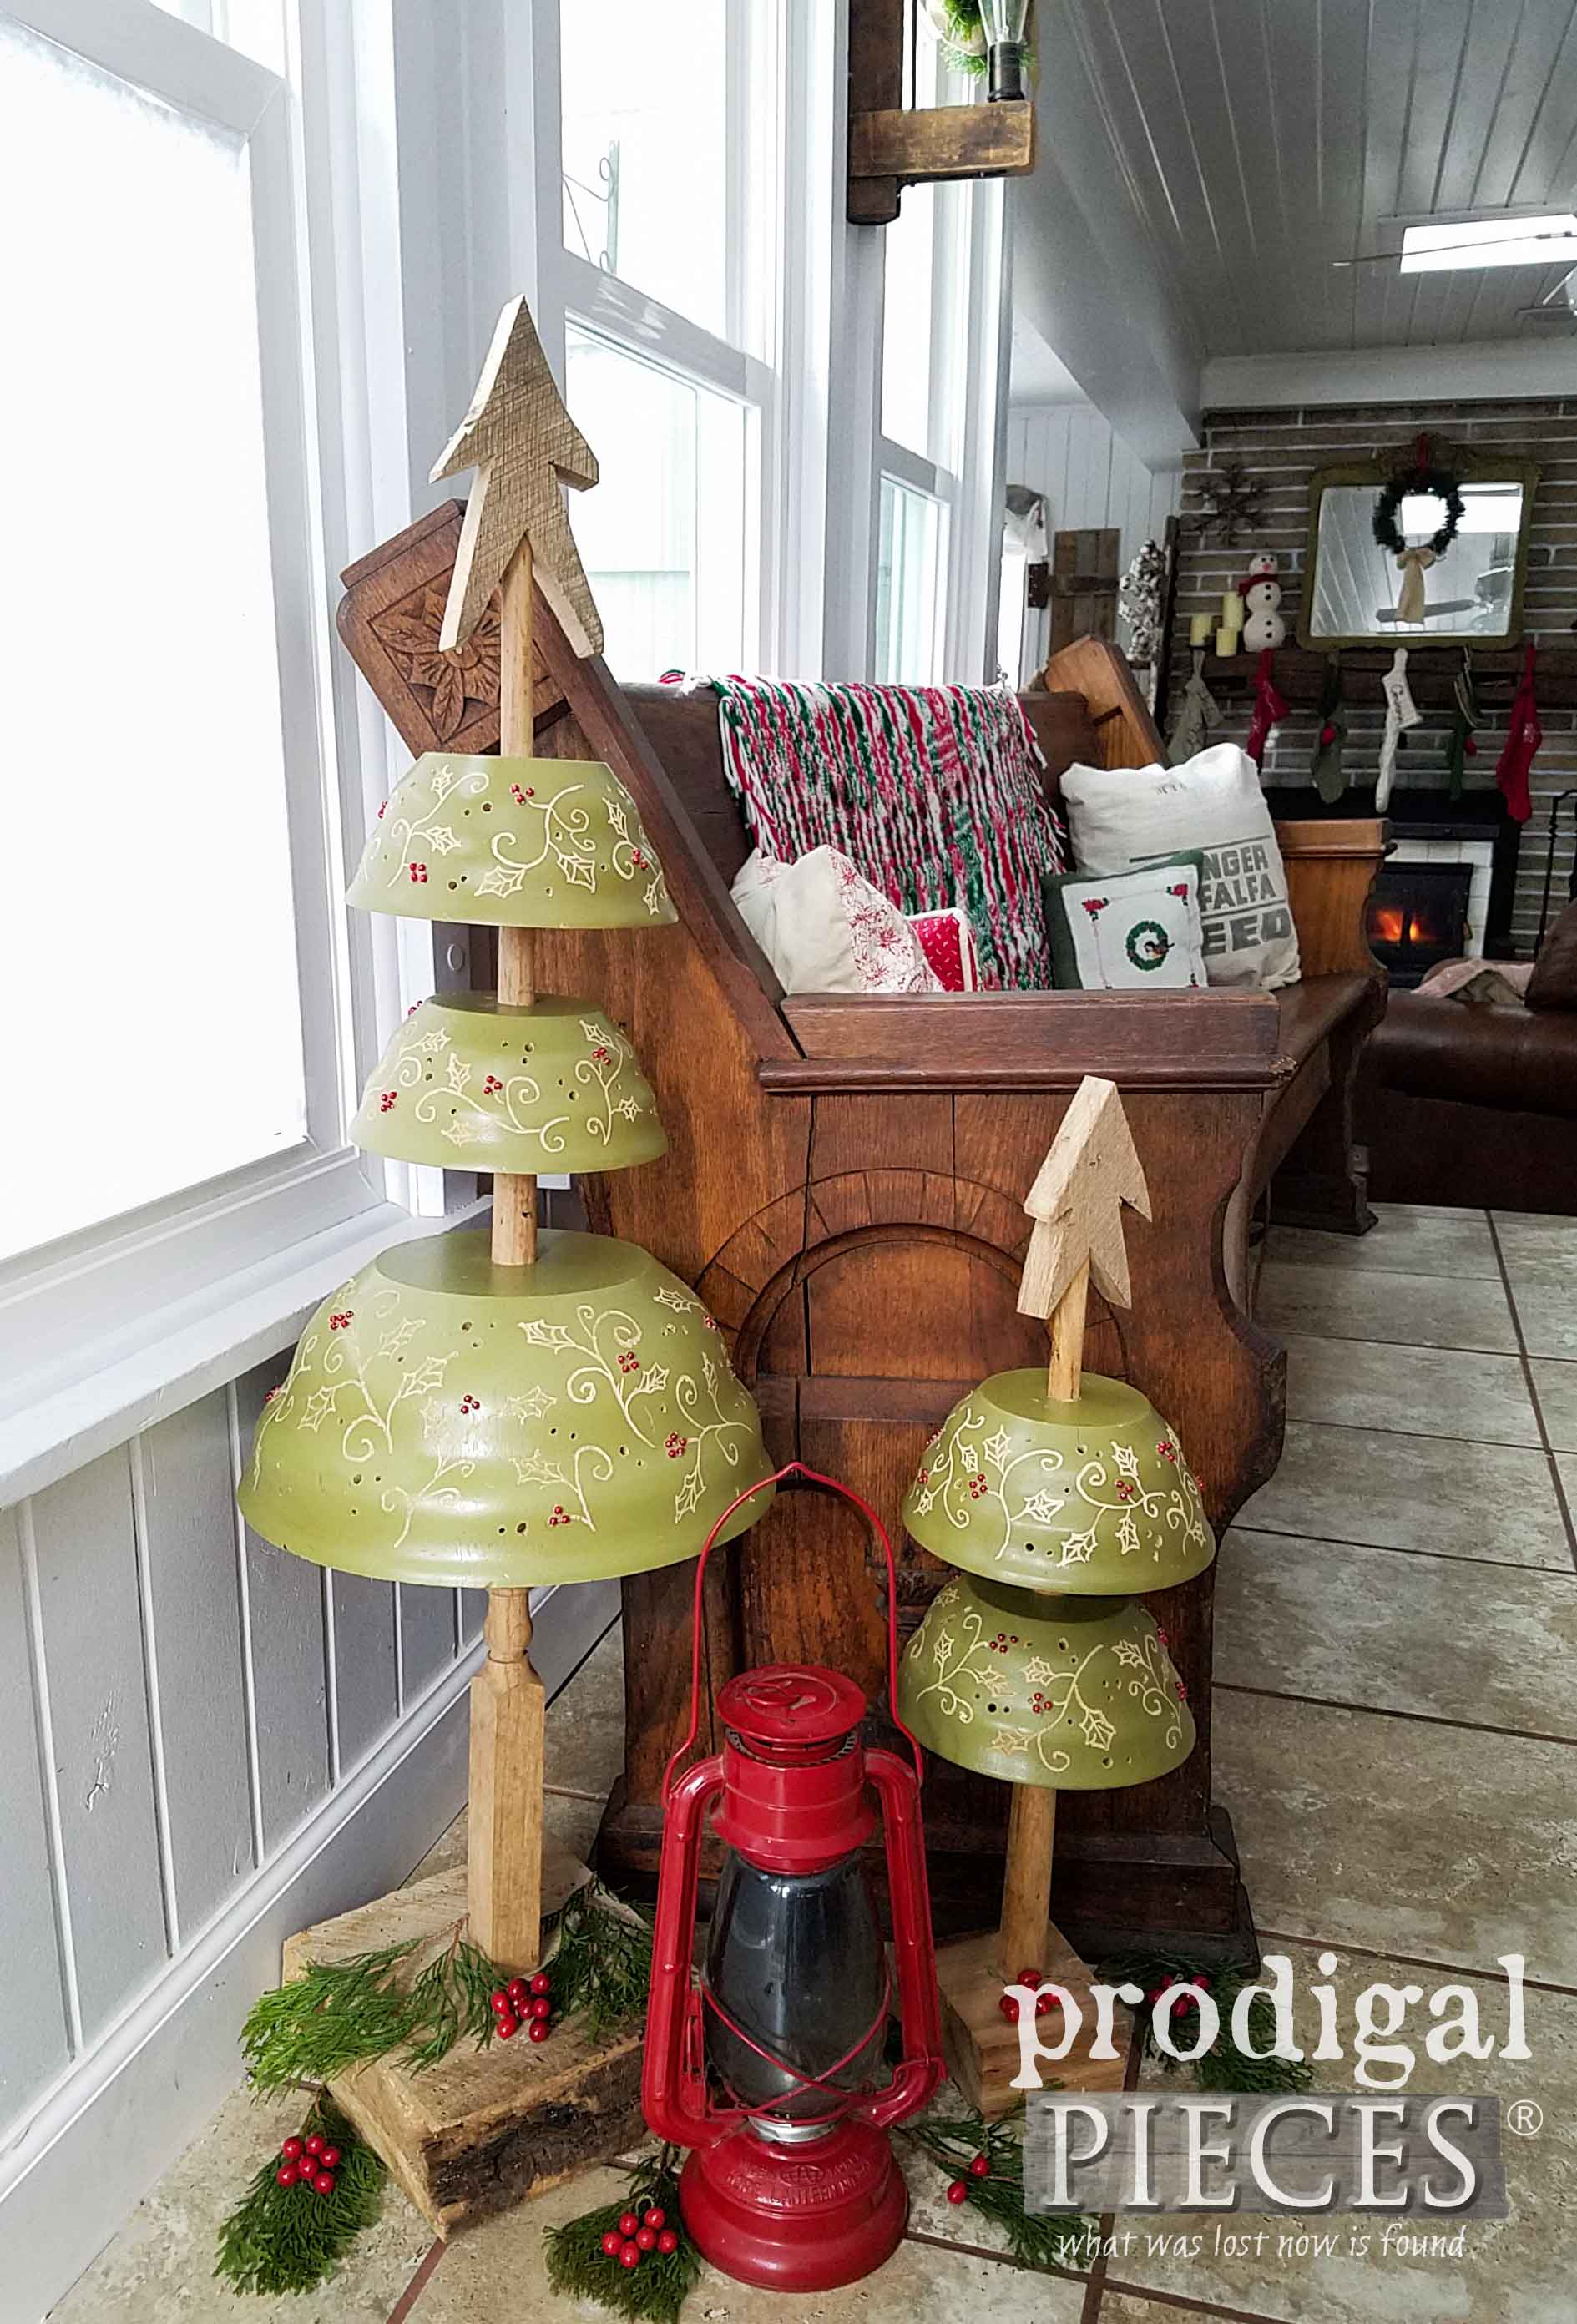 Whimsical Upcycled Christmas Trees from Wooden Salad Bowls by Larissa of Prodigal Pieces | prodigalpieces.com